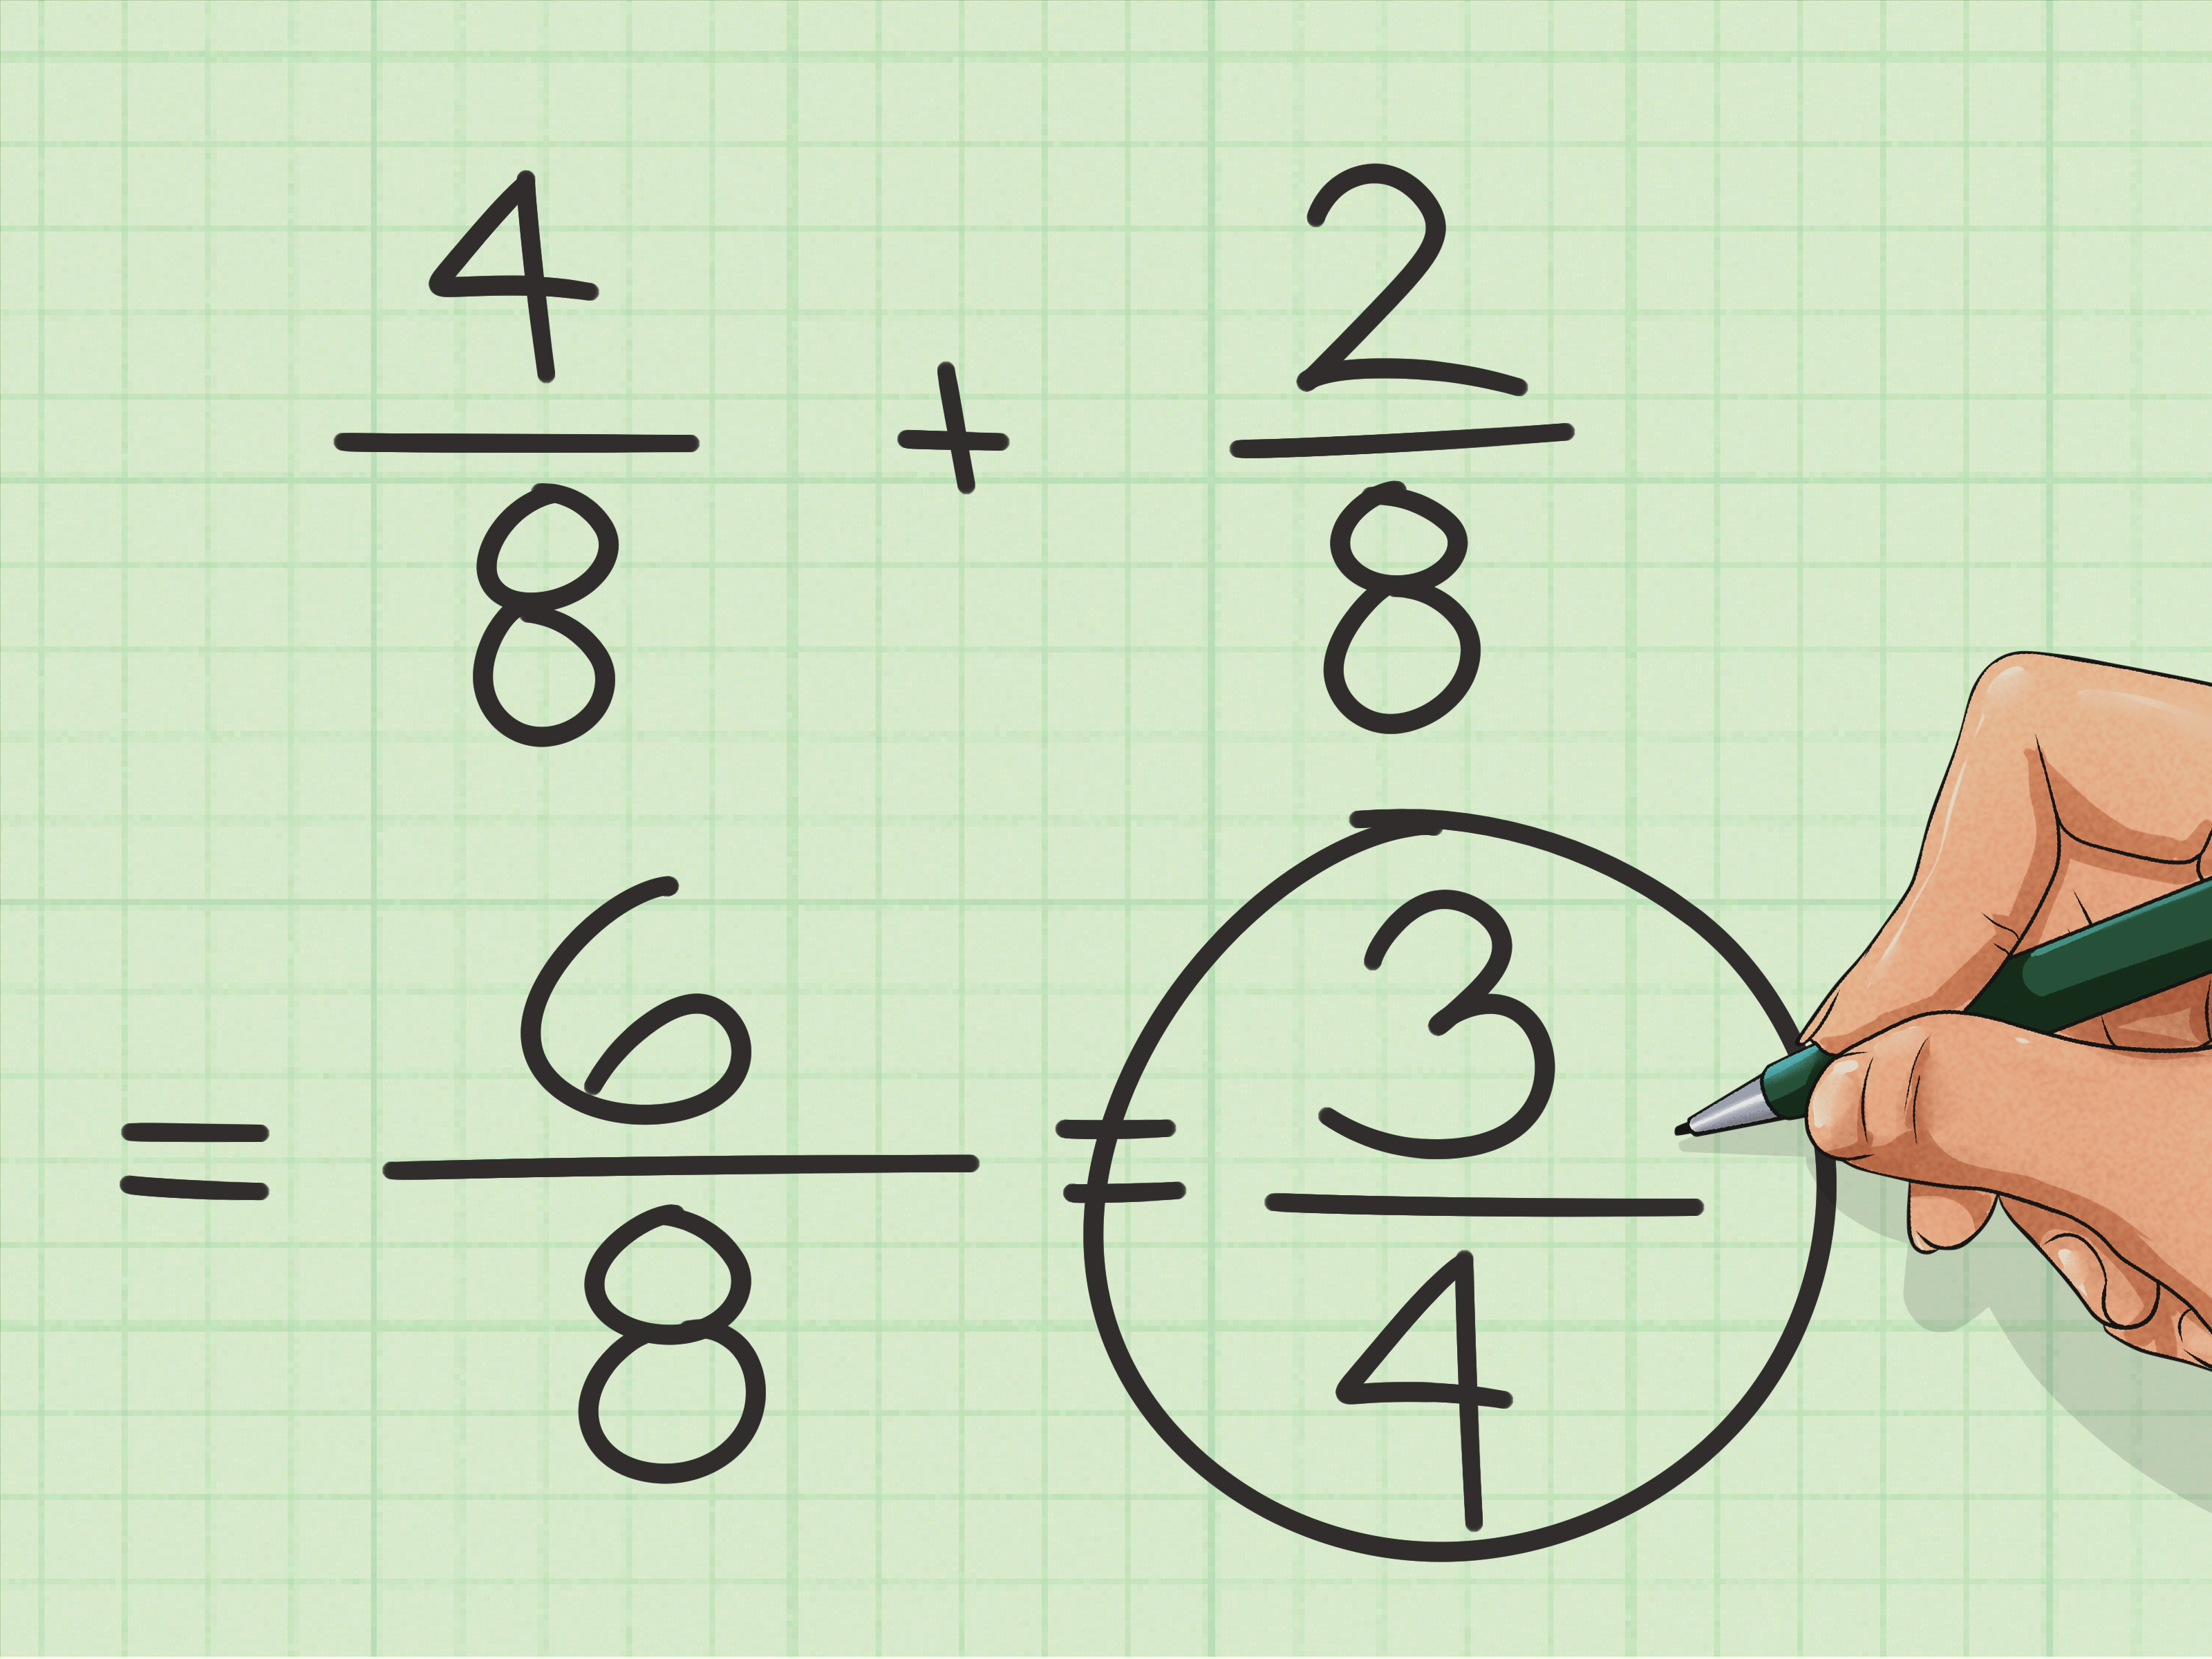 How To Add Fractions With Unlike Denominators 9 Steps